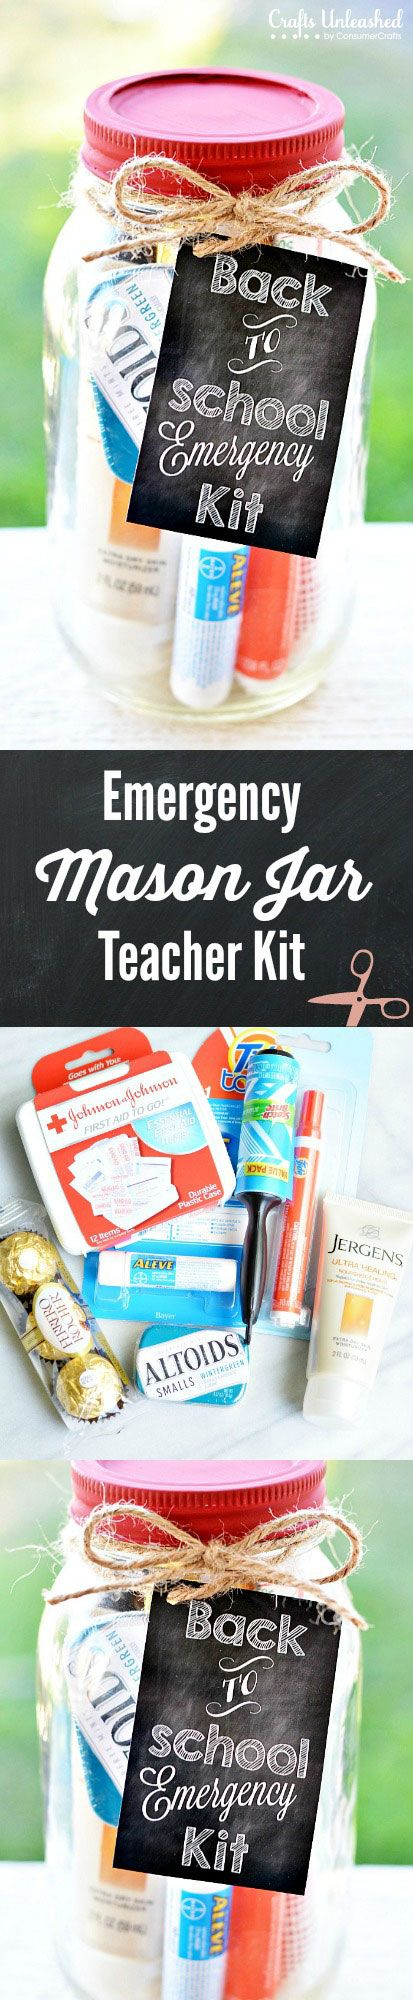 Emergency Mason Jar Teacher Kit